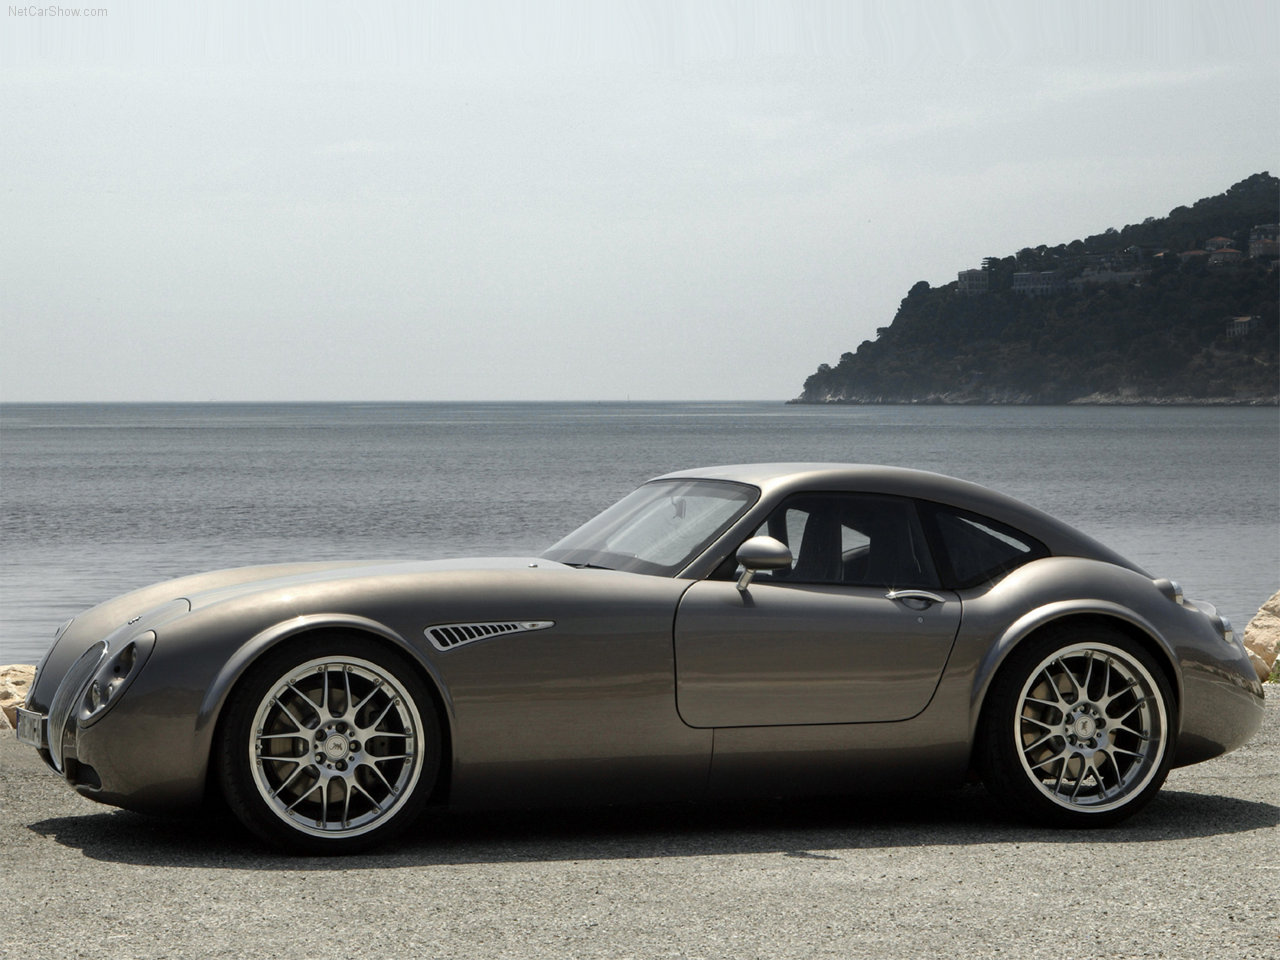 Wiesmann Mf4 Interesting News With The Best Wiesmann Mf4